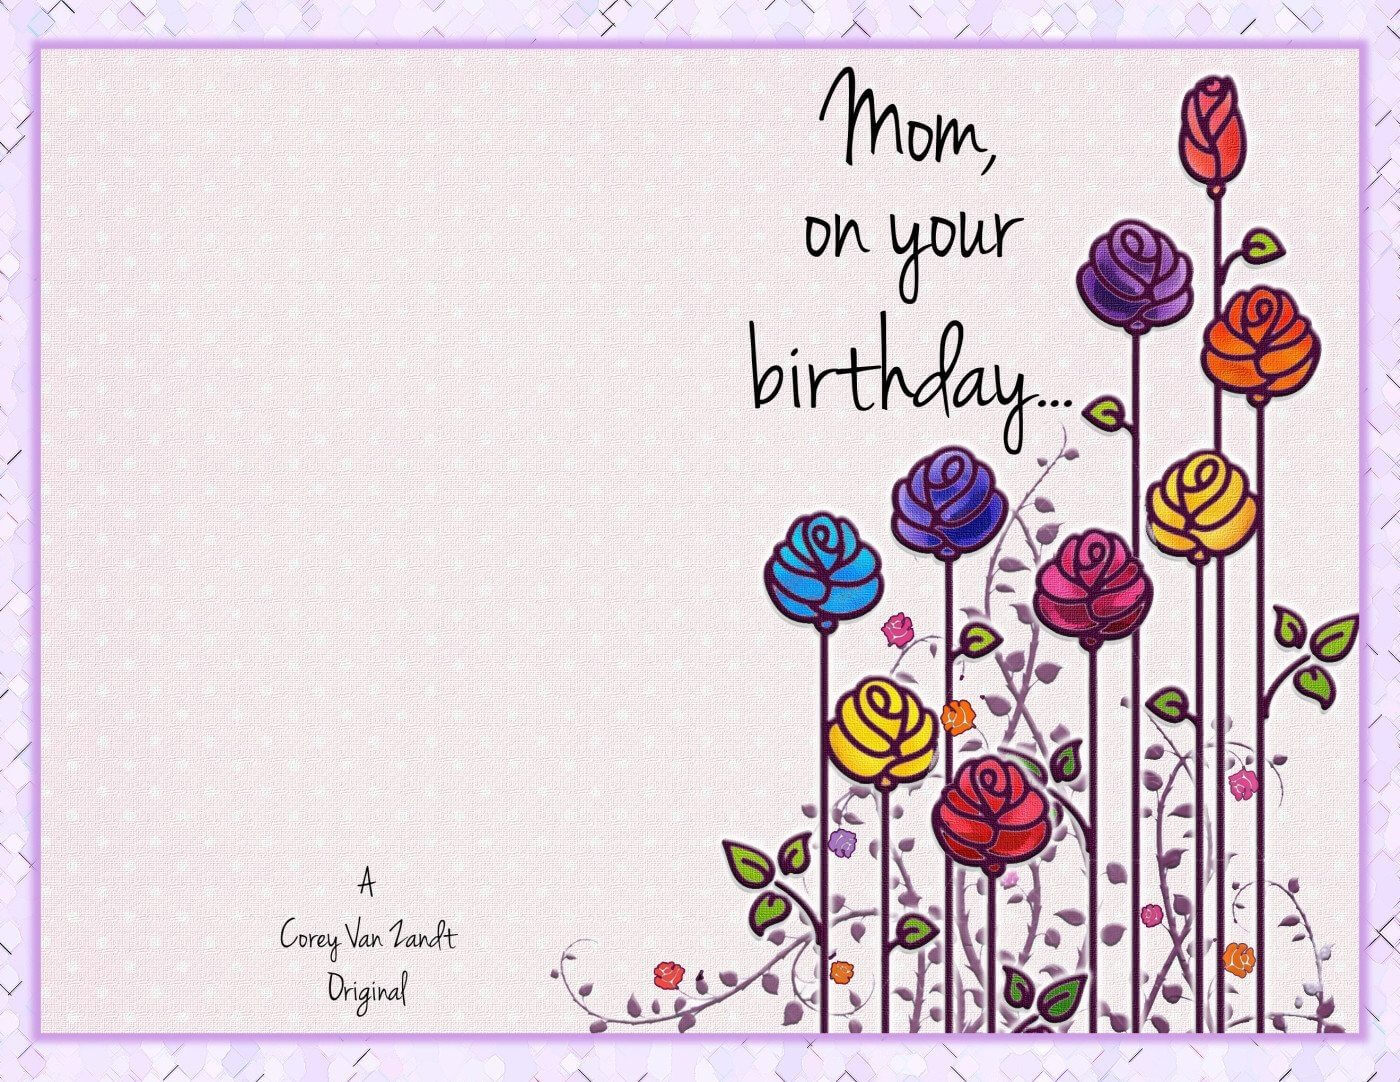 Mom Birthday Card Template   Theveliger In Mom Birthday Card Template